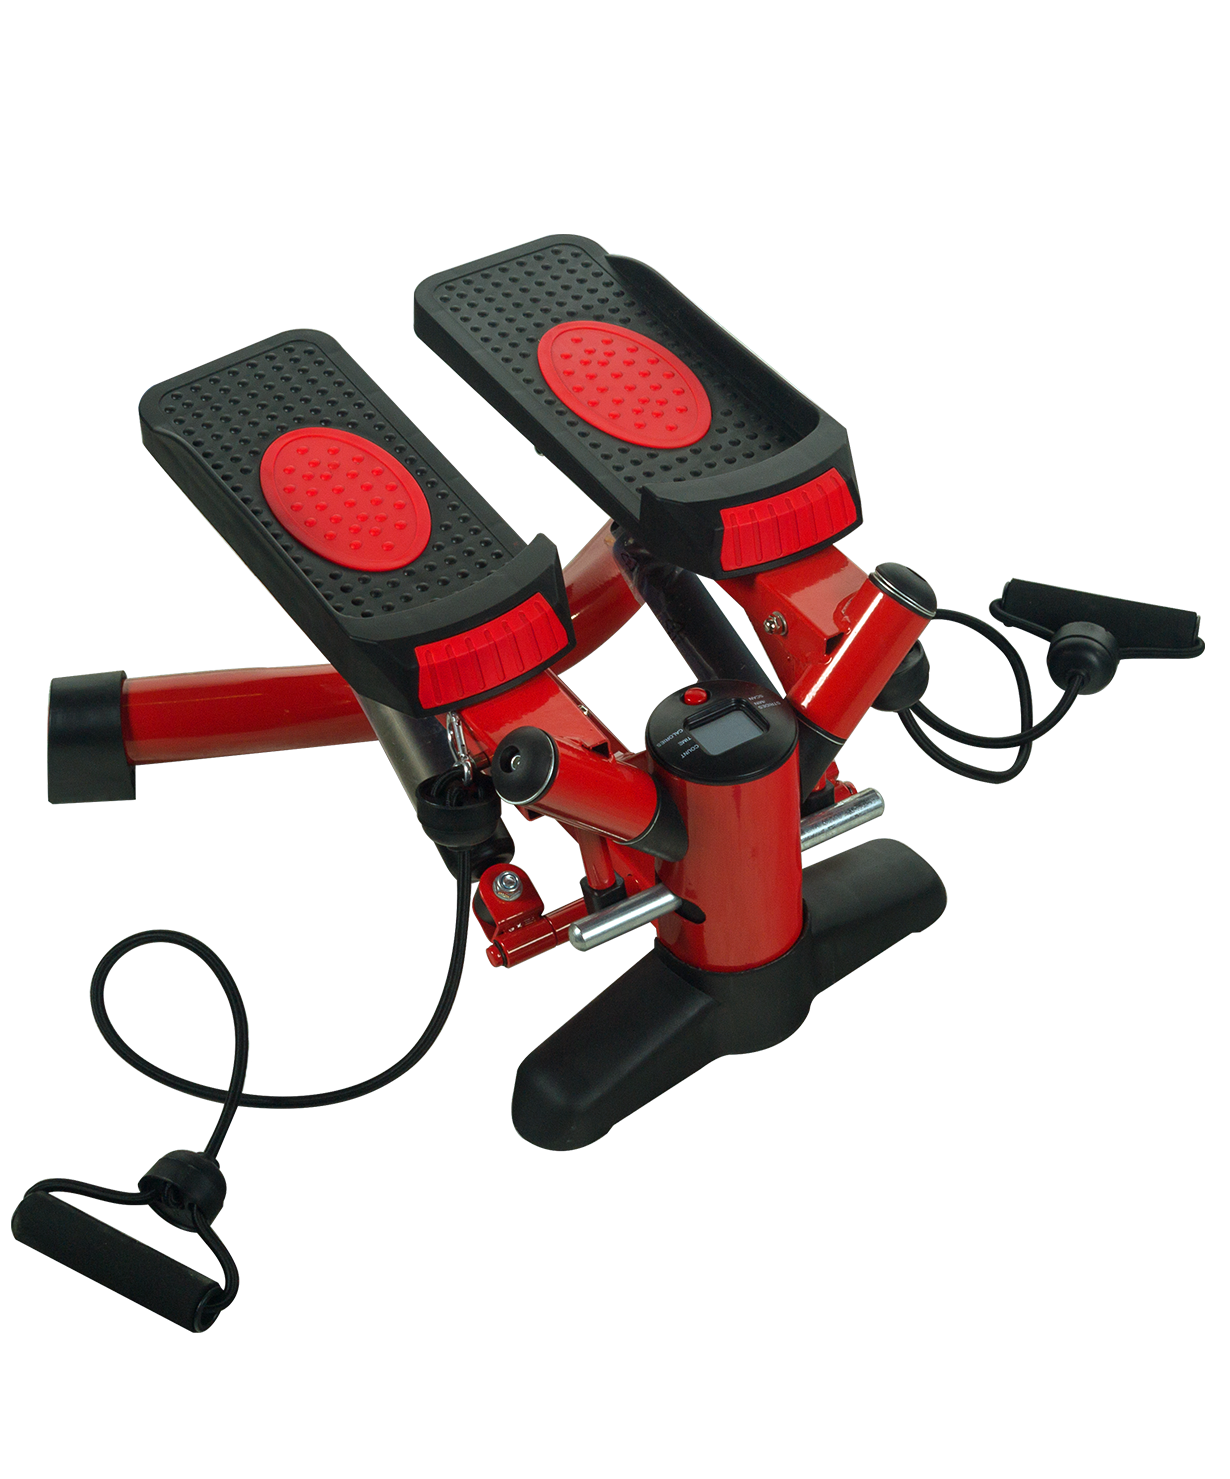 uploads gym equipment gym equipment PNG3 3